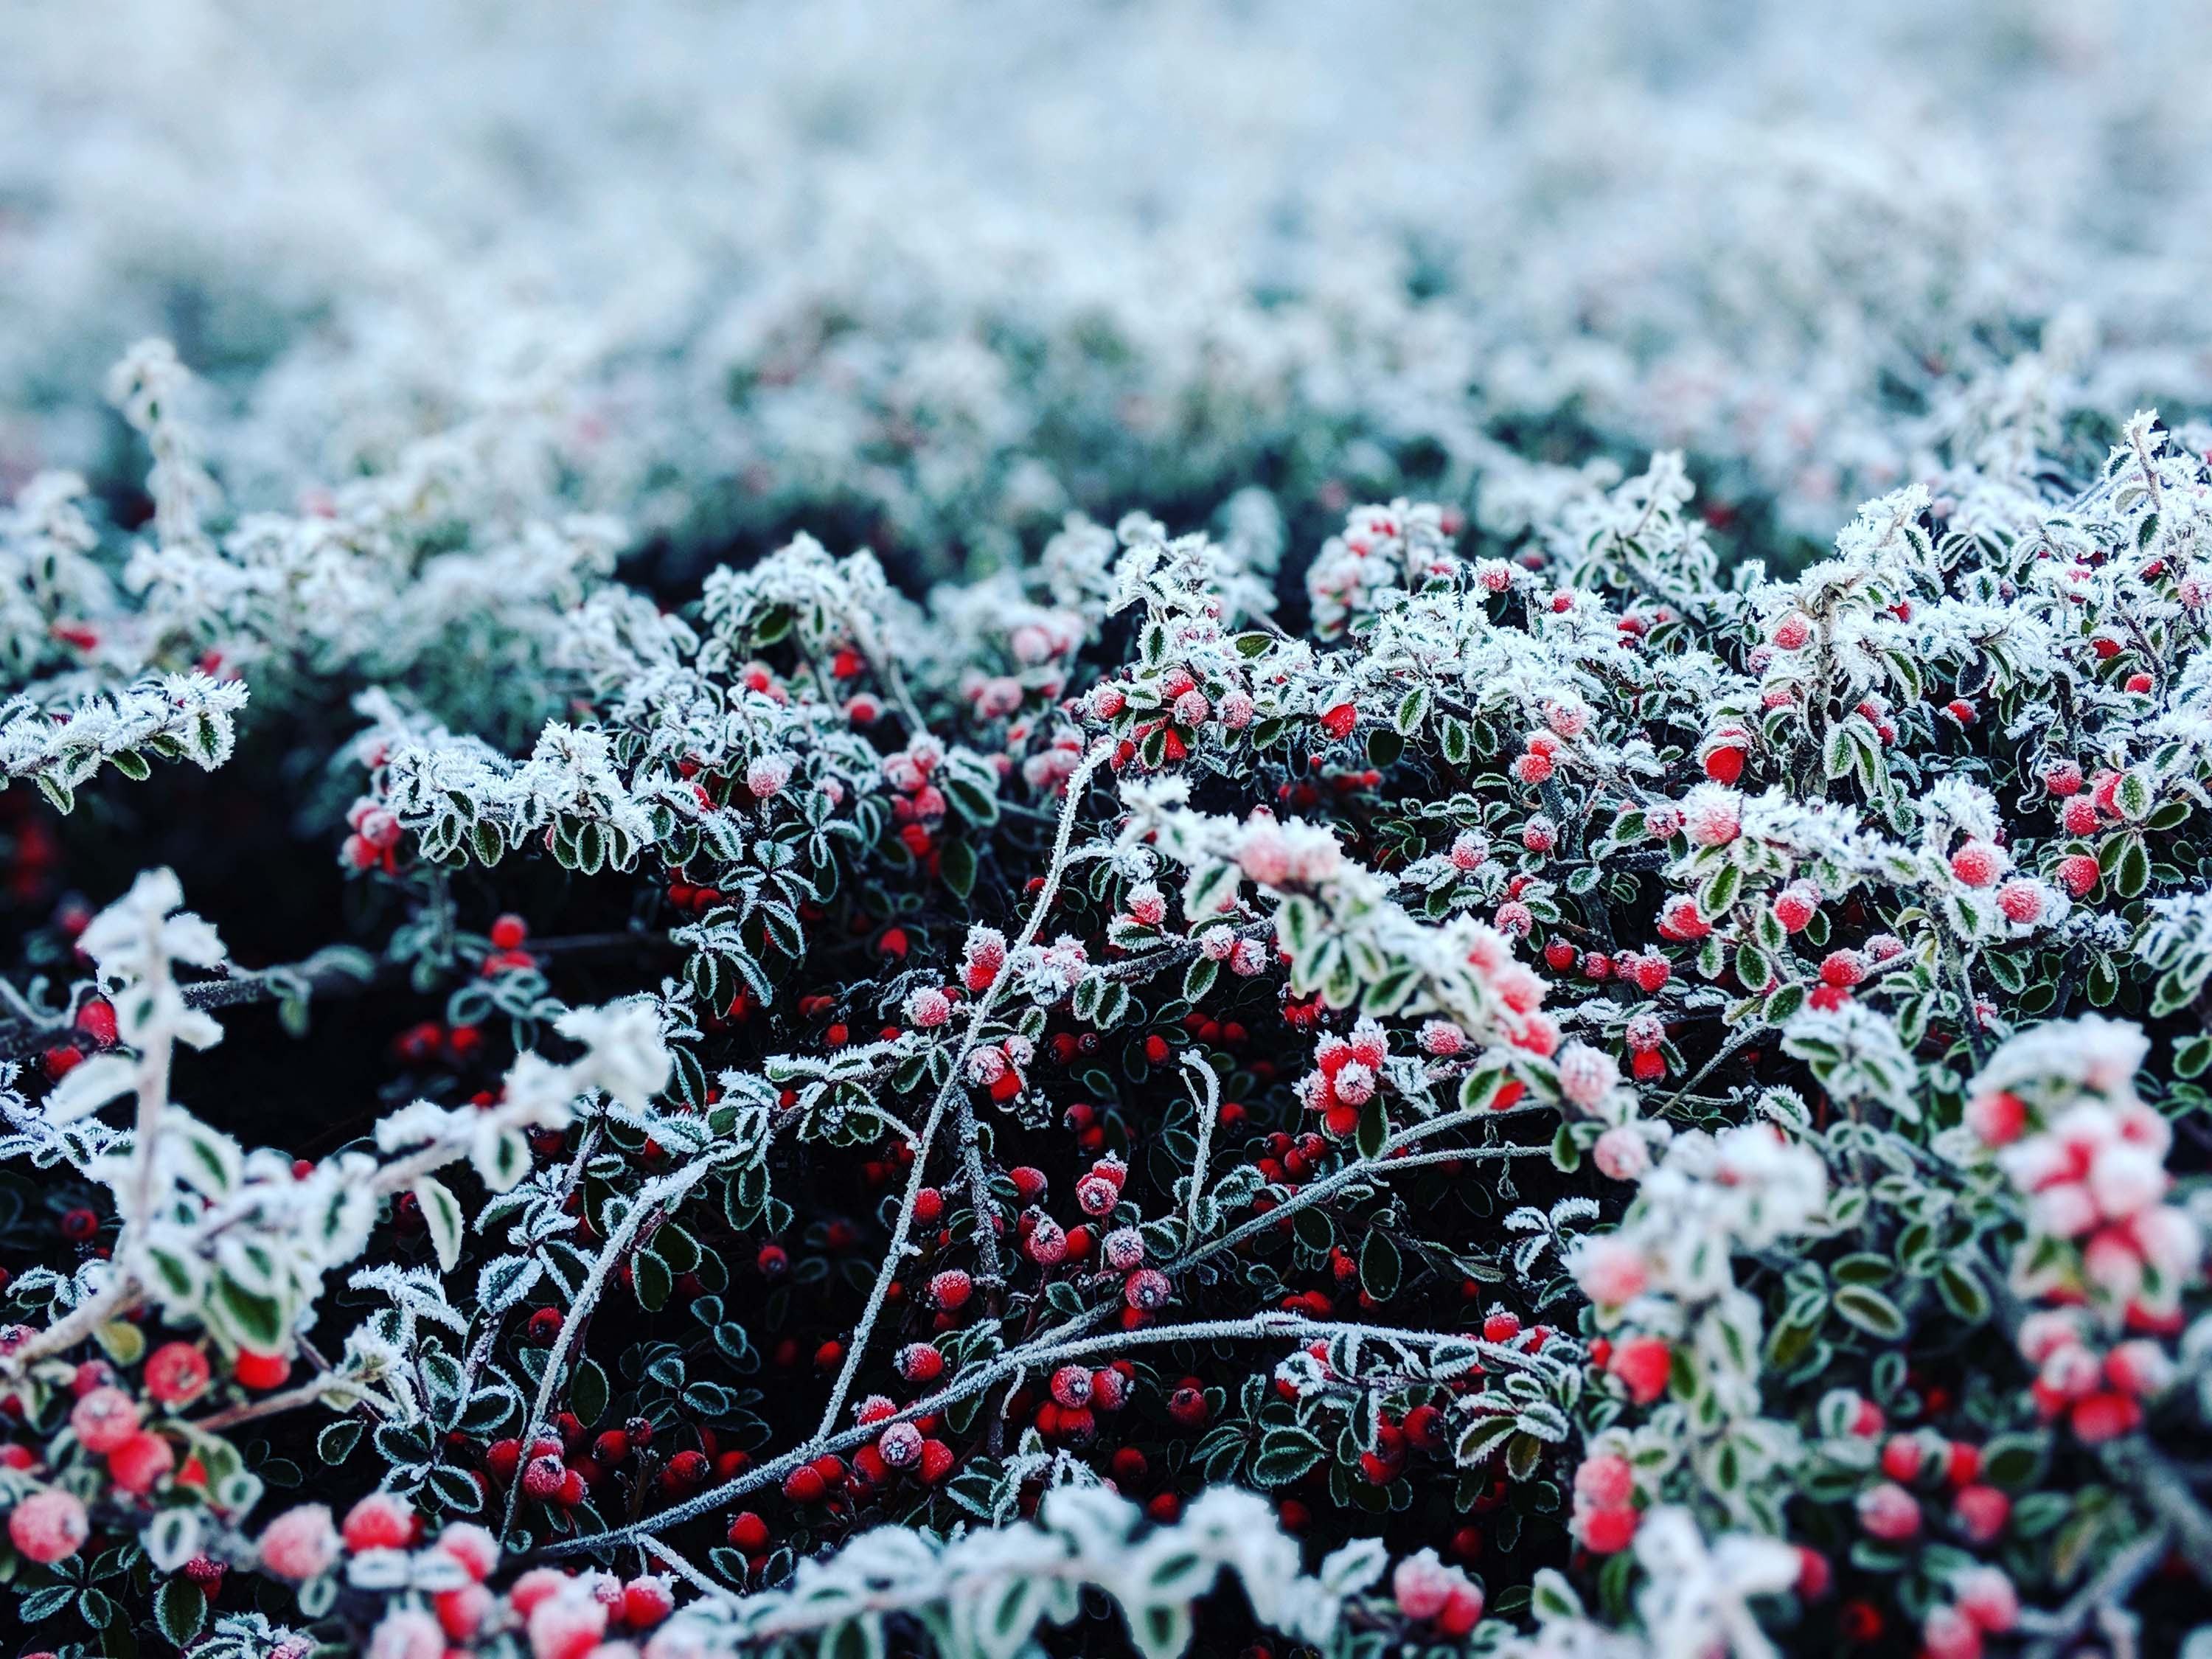 Winter Frost on Branches of Berries